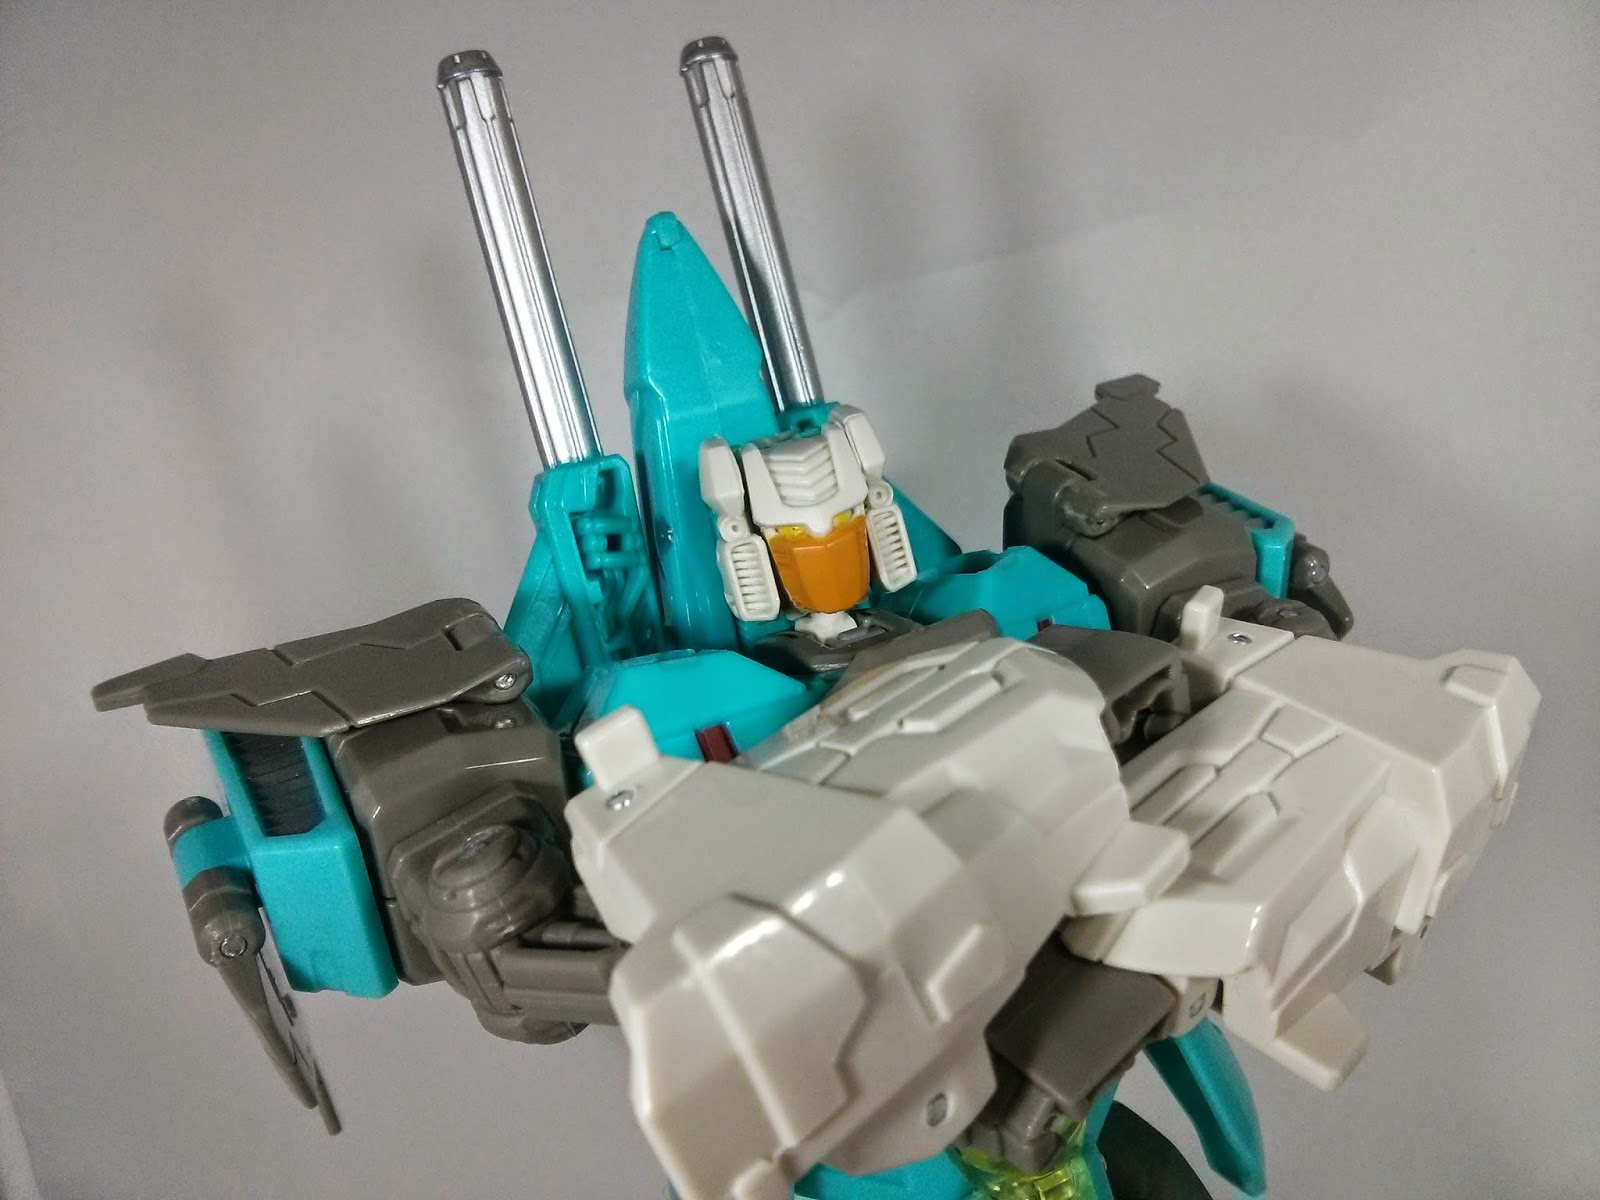 Transformers Generations Brainstorm review